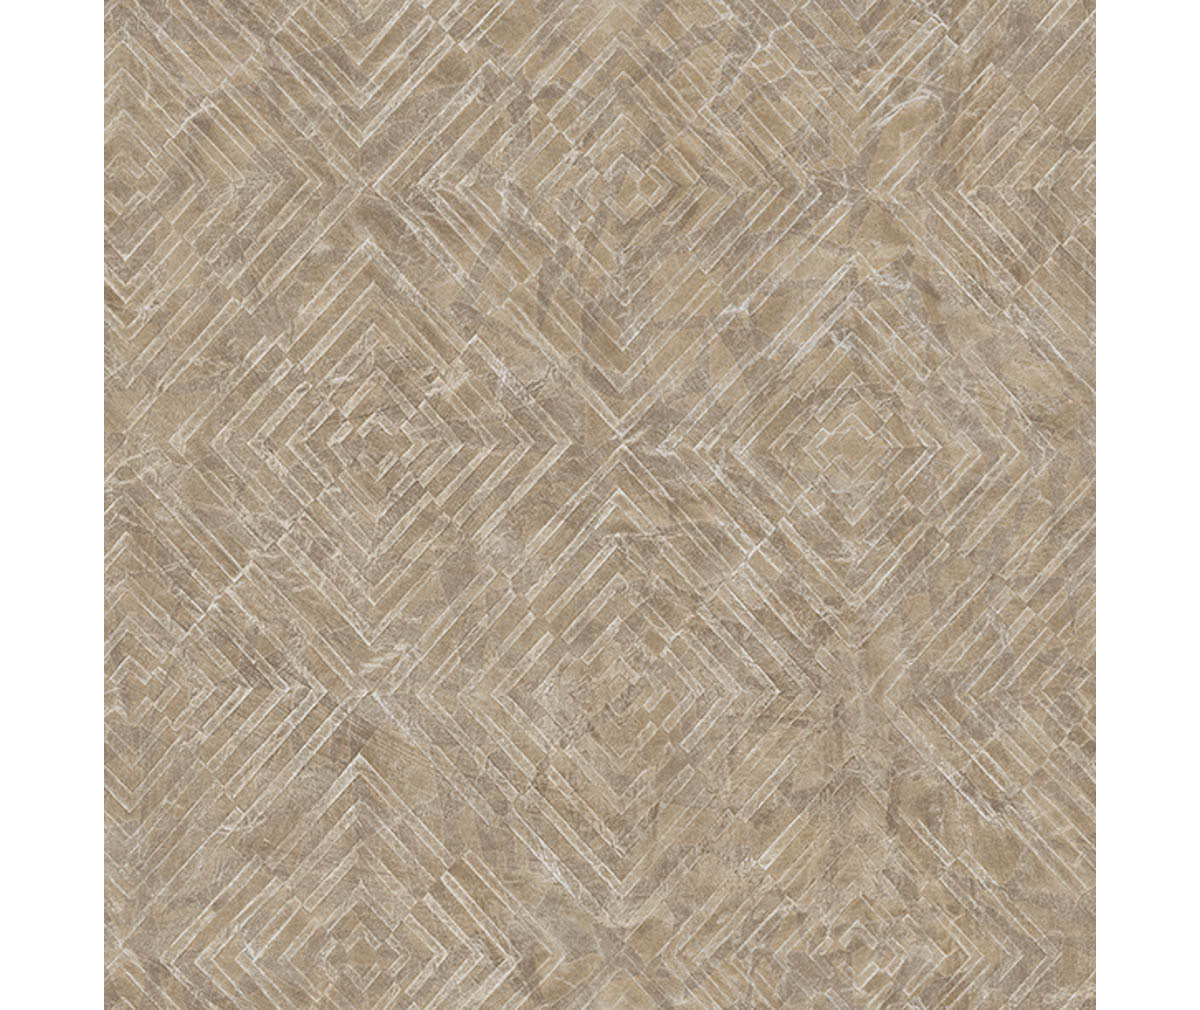 Labyrinth Bronze Geometric Wallpaper available at Barrydowne Paint